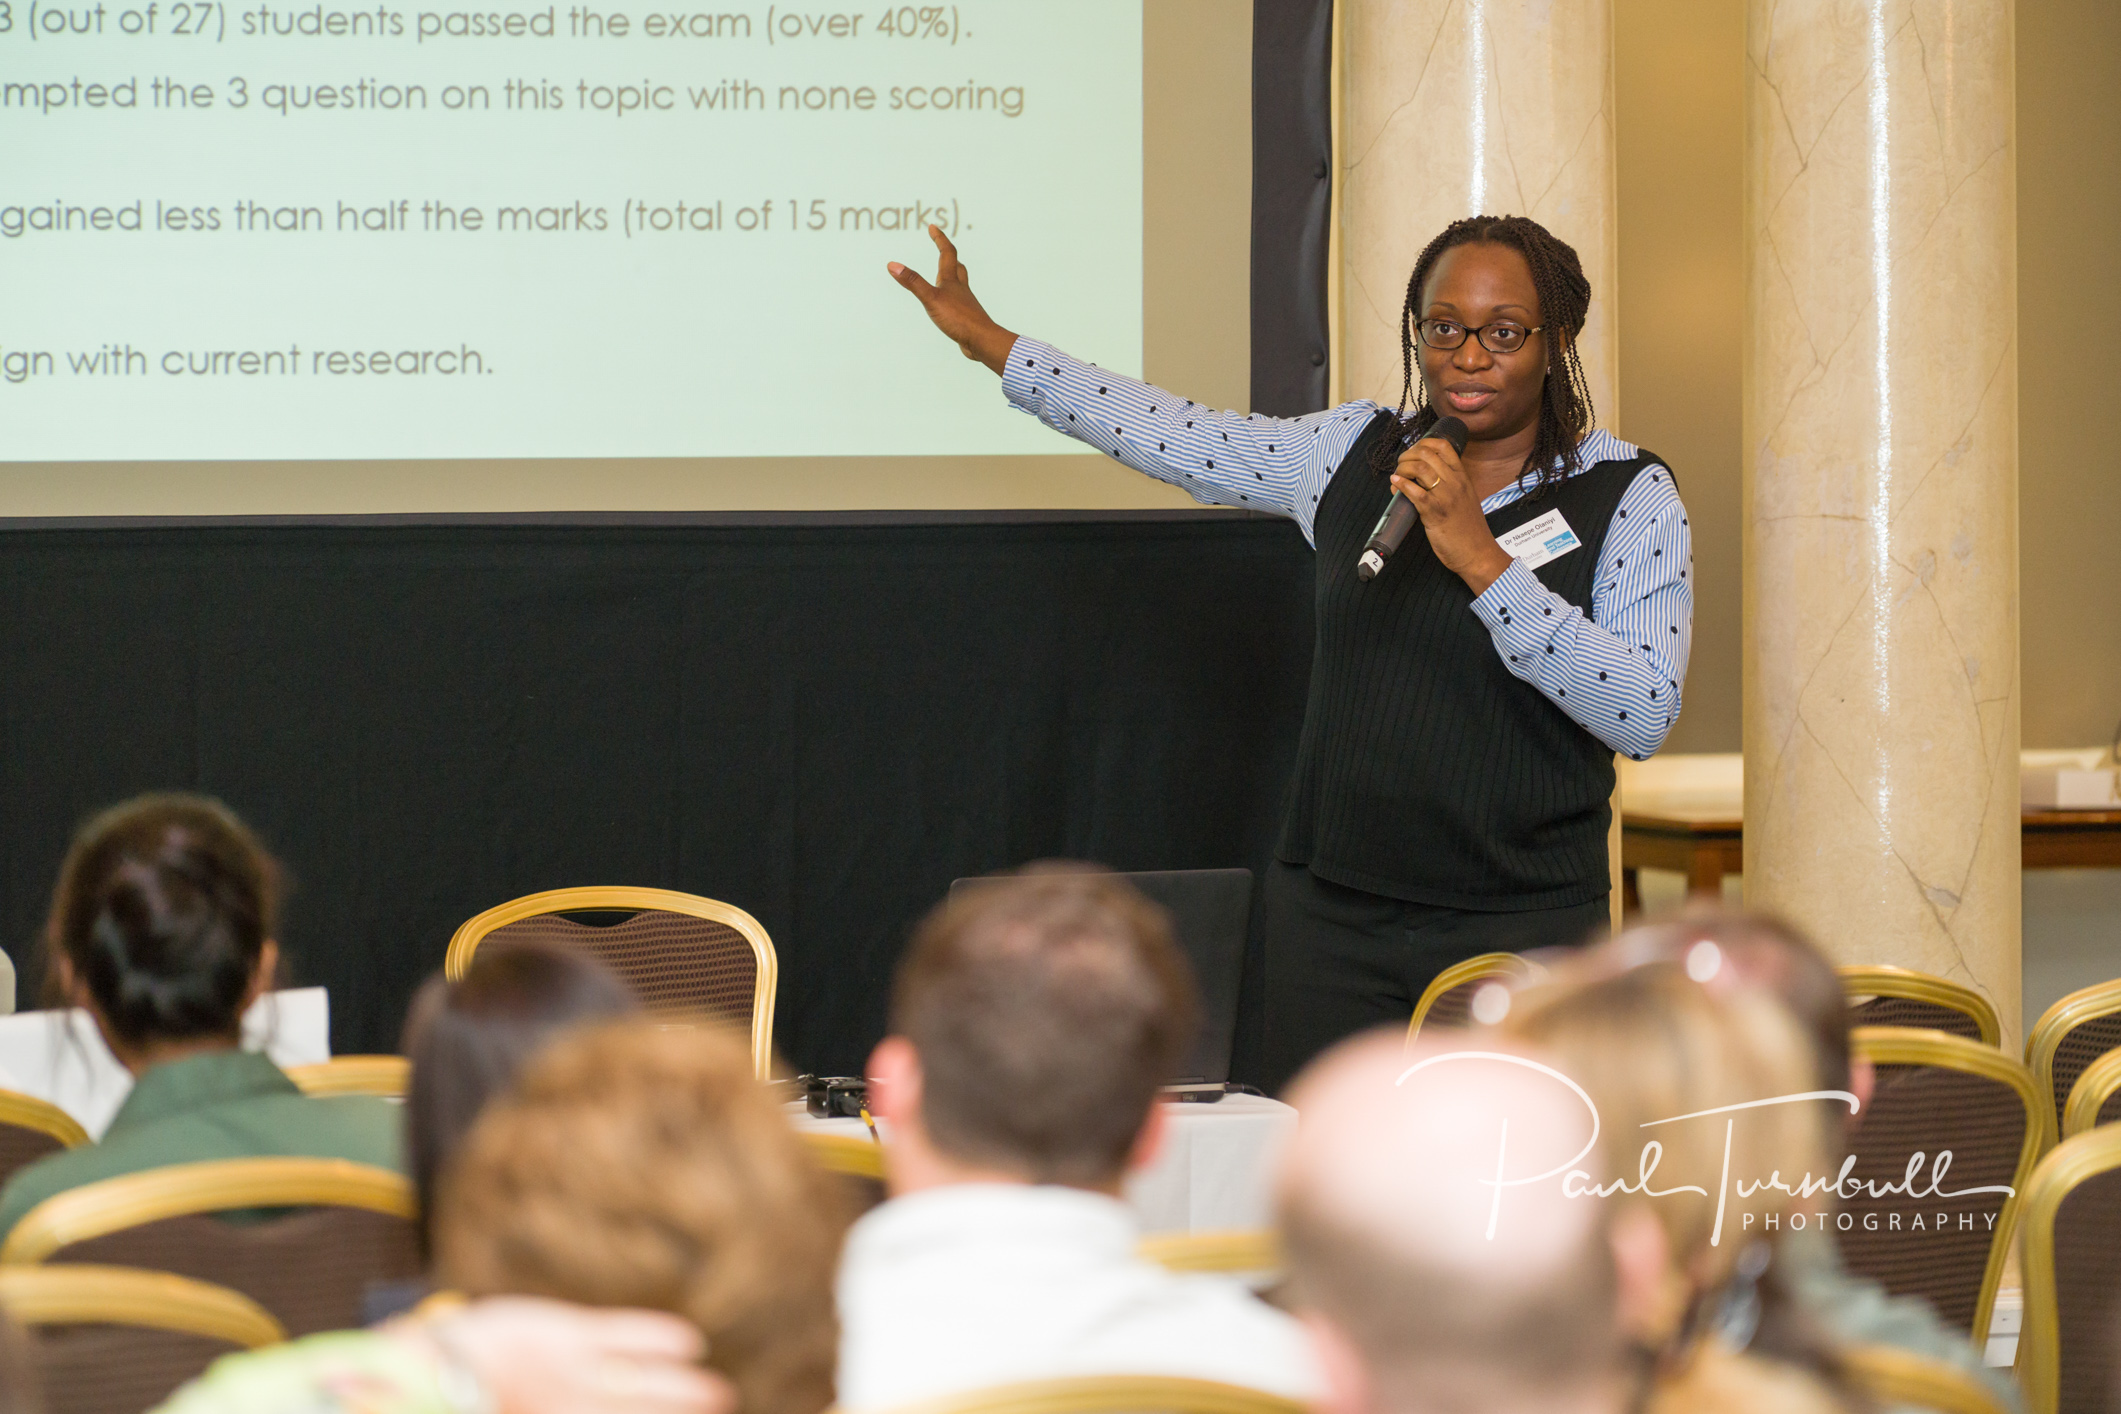 conference-event-photographer-queens-hotel-leeds-yorkshire-054.jpg